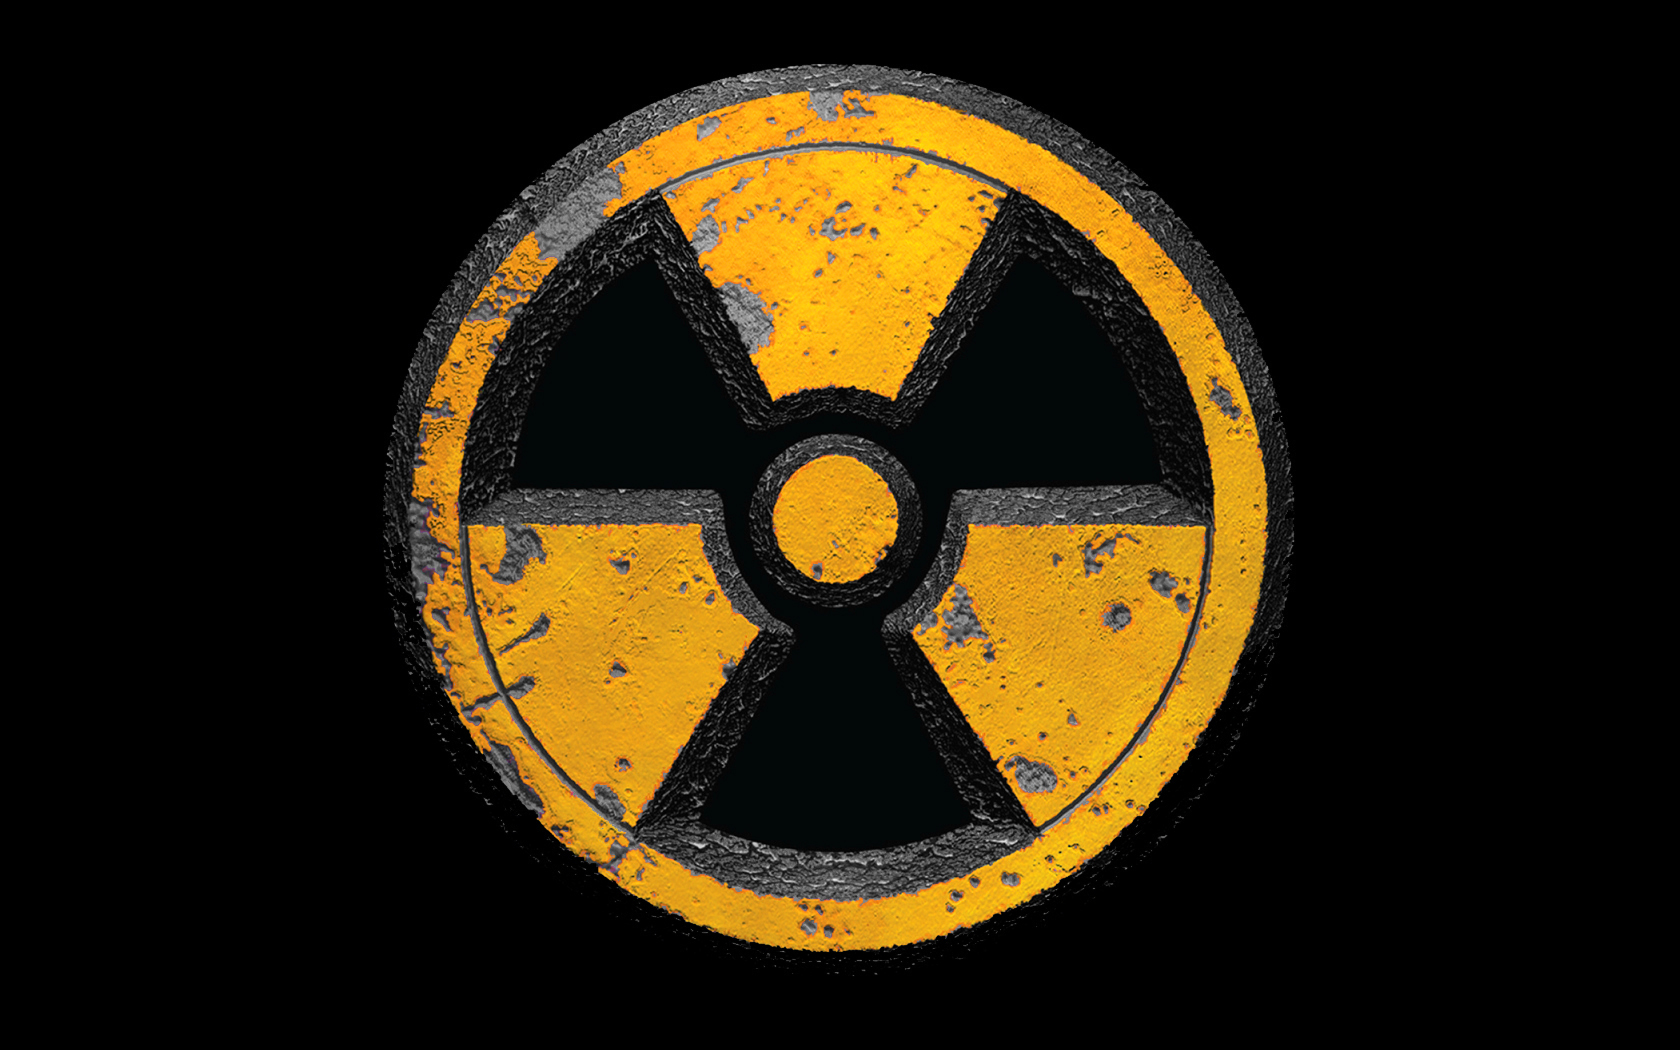 Nuke Symbol Wallpaper Images Pictures   Becuo 1680x1050